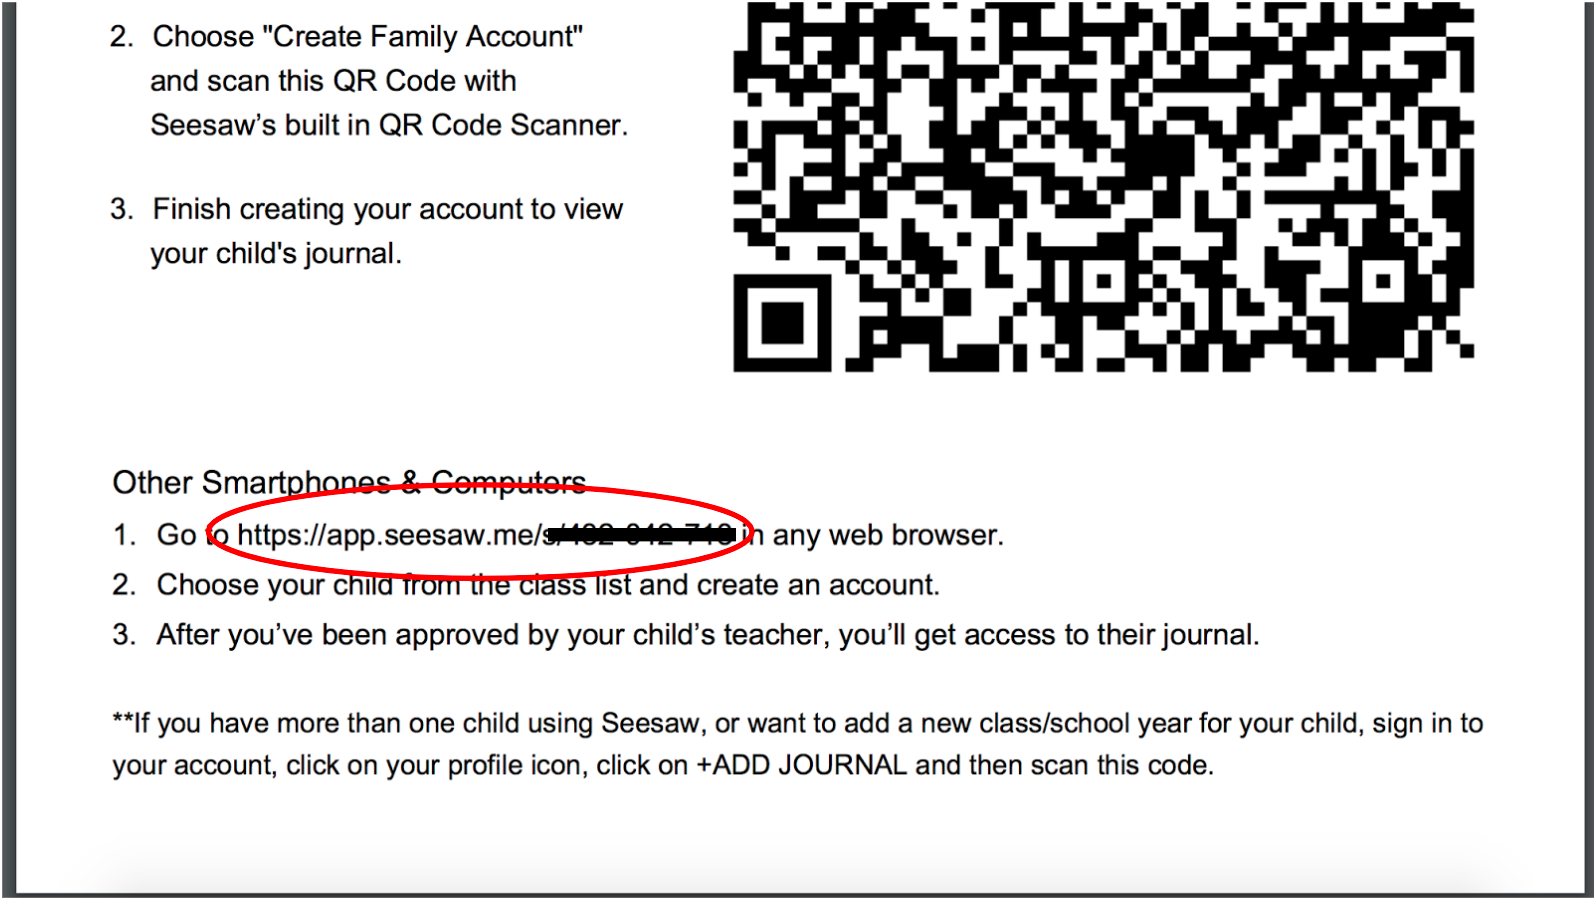 Why isn't my QR code working? – Seesaw Help Center